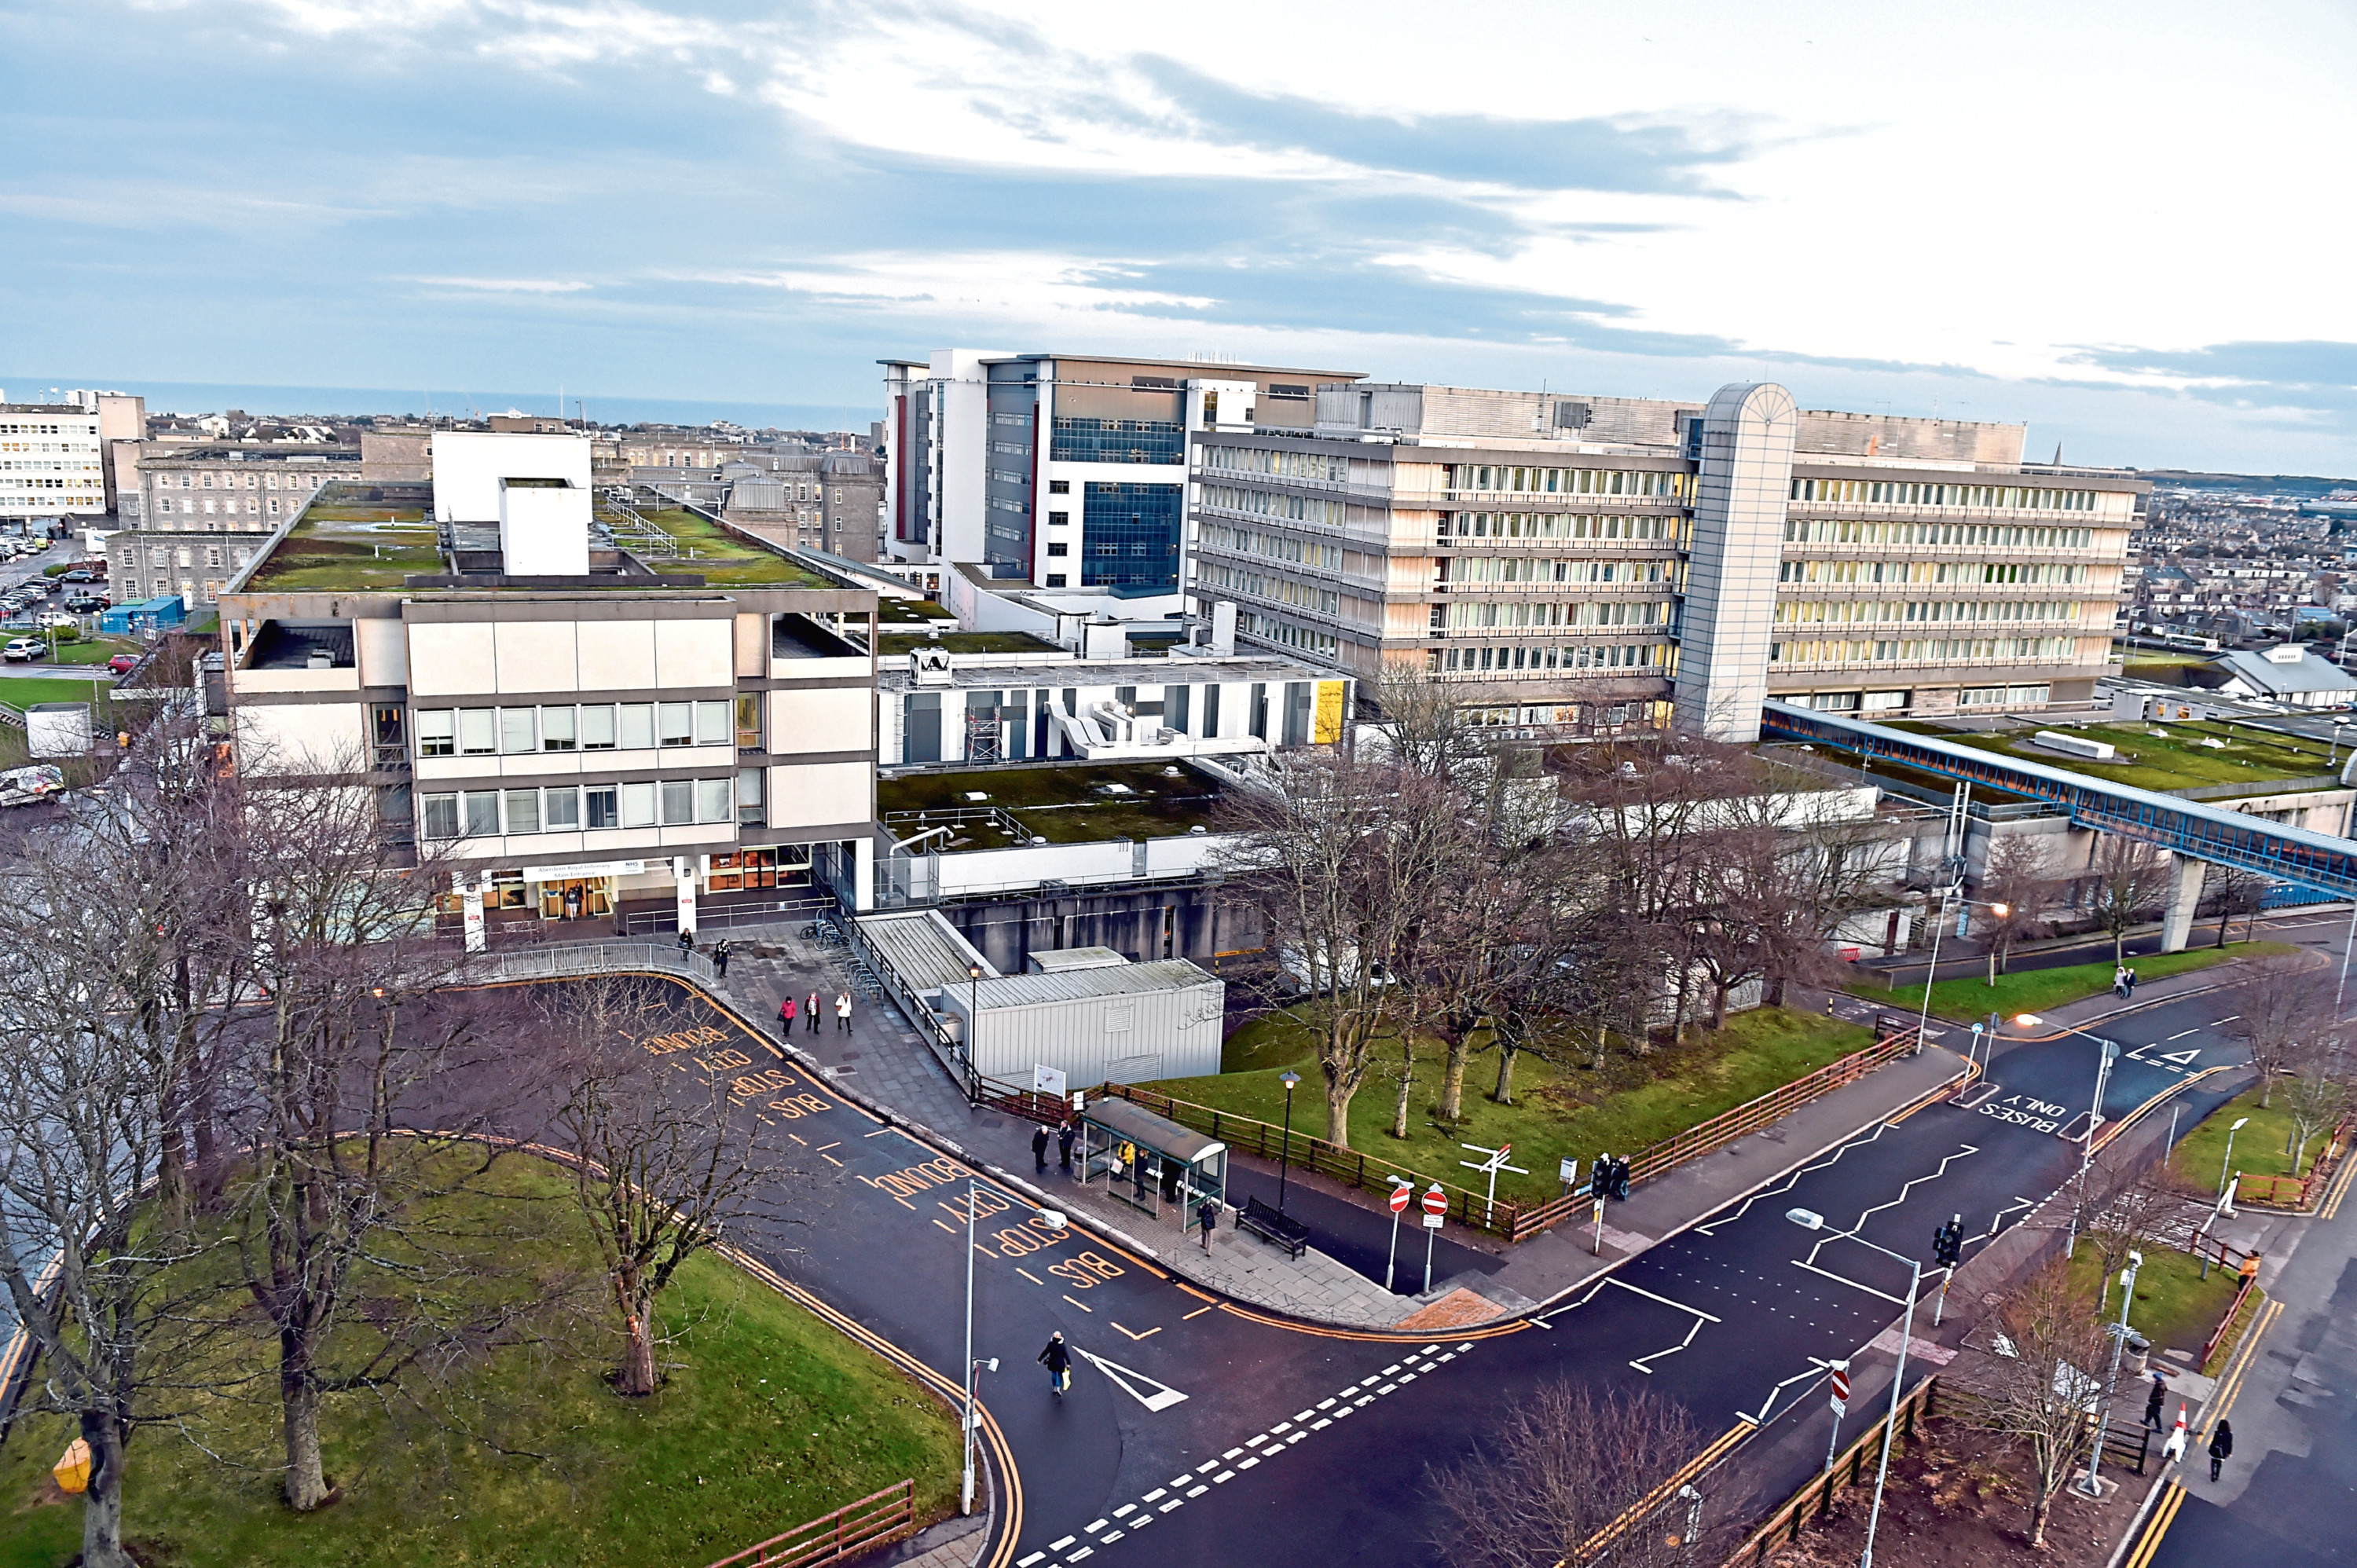 A view of Aberdeen Royal Infirmary.